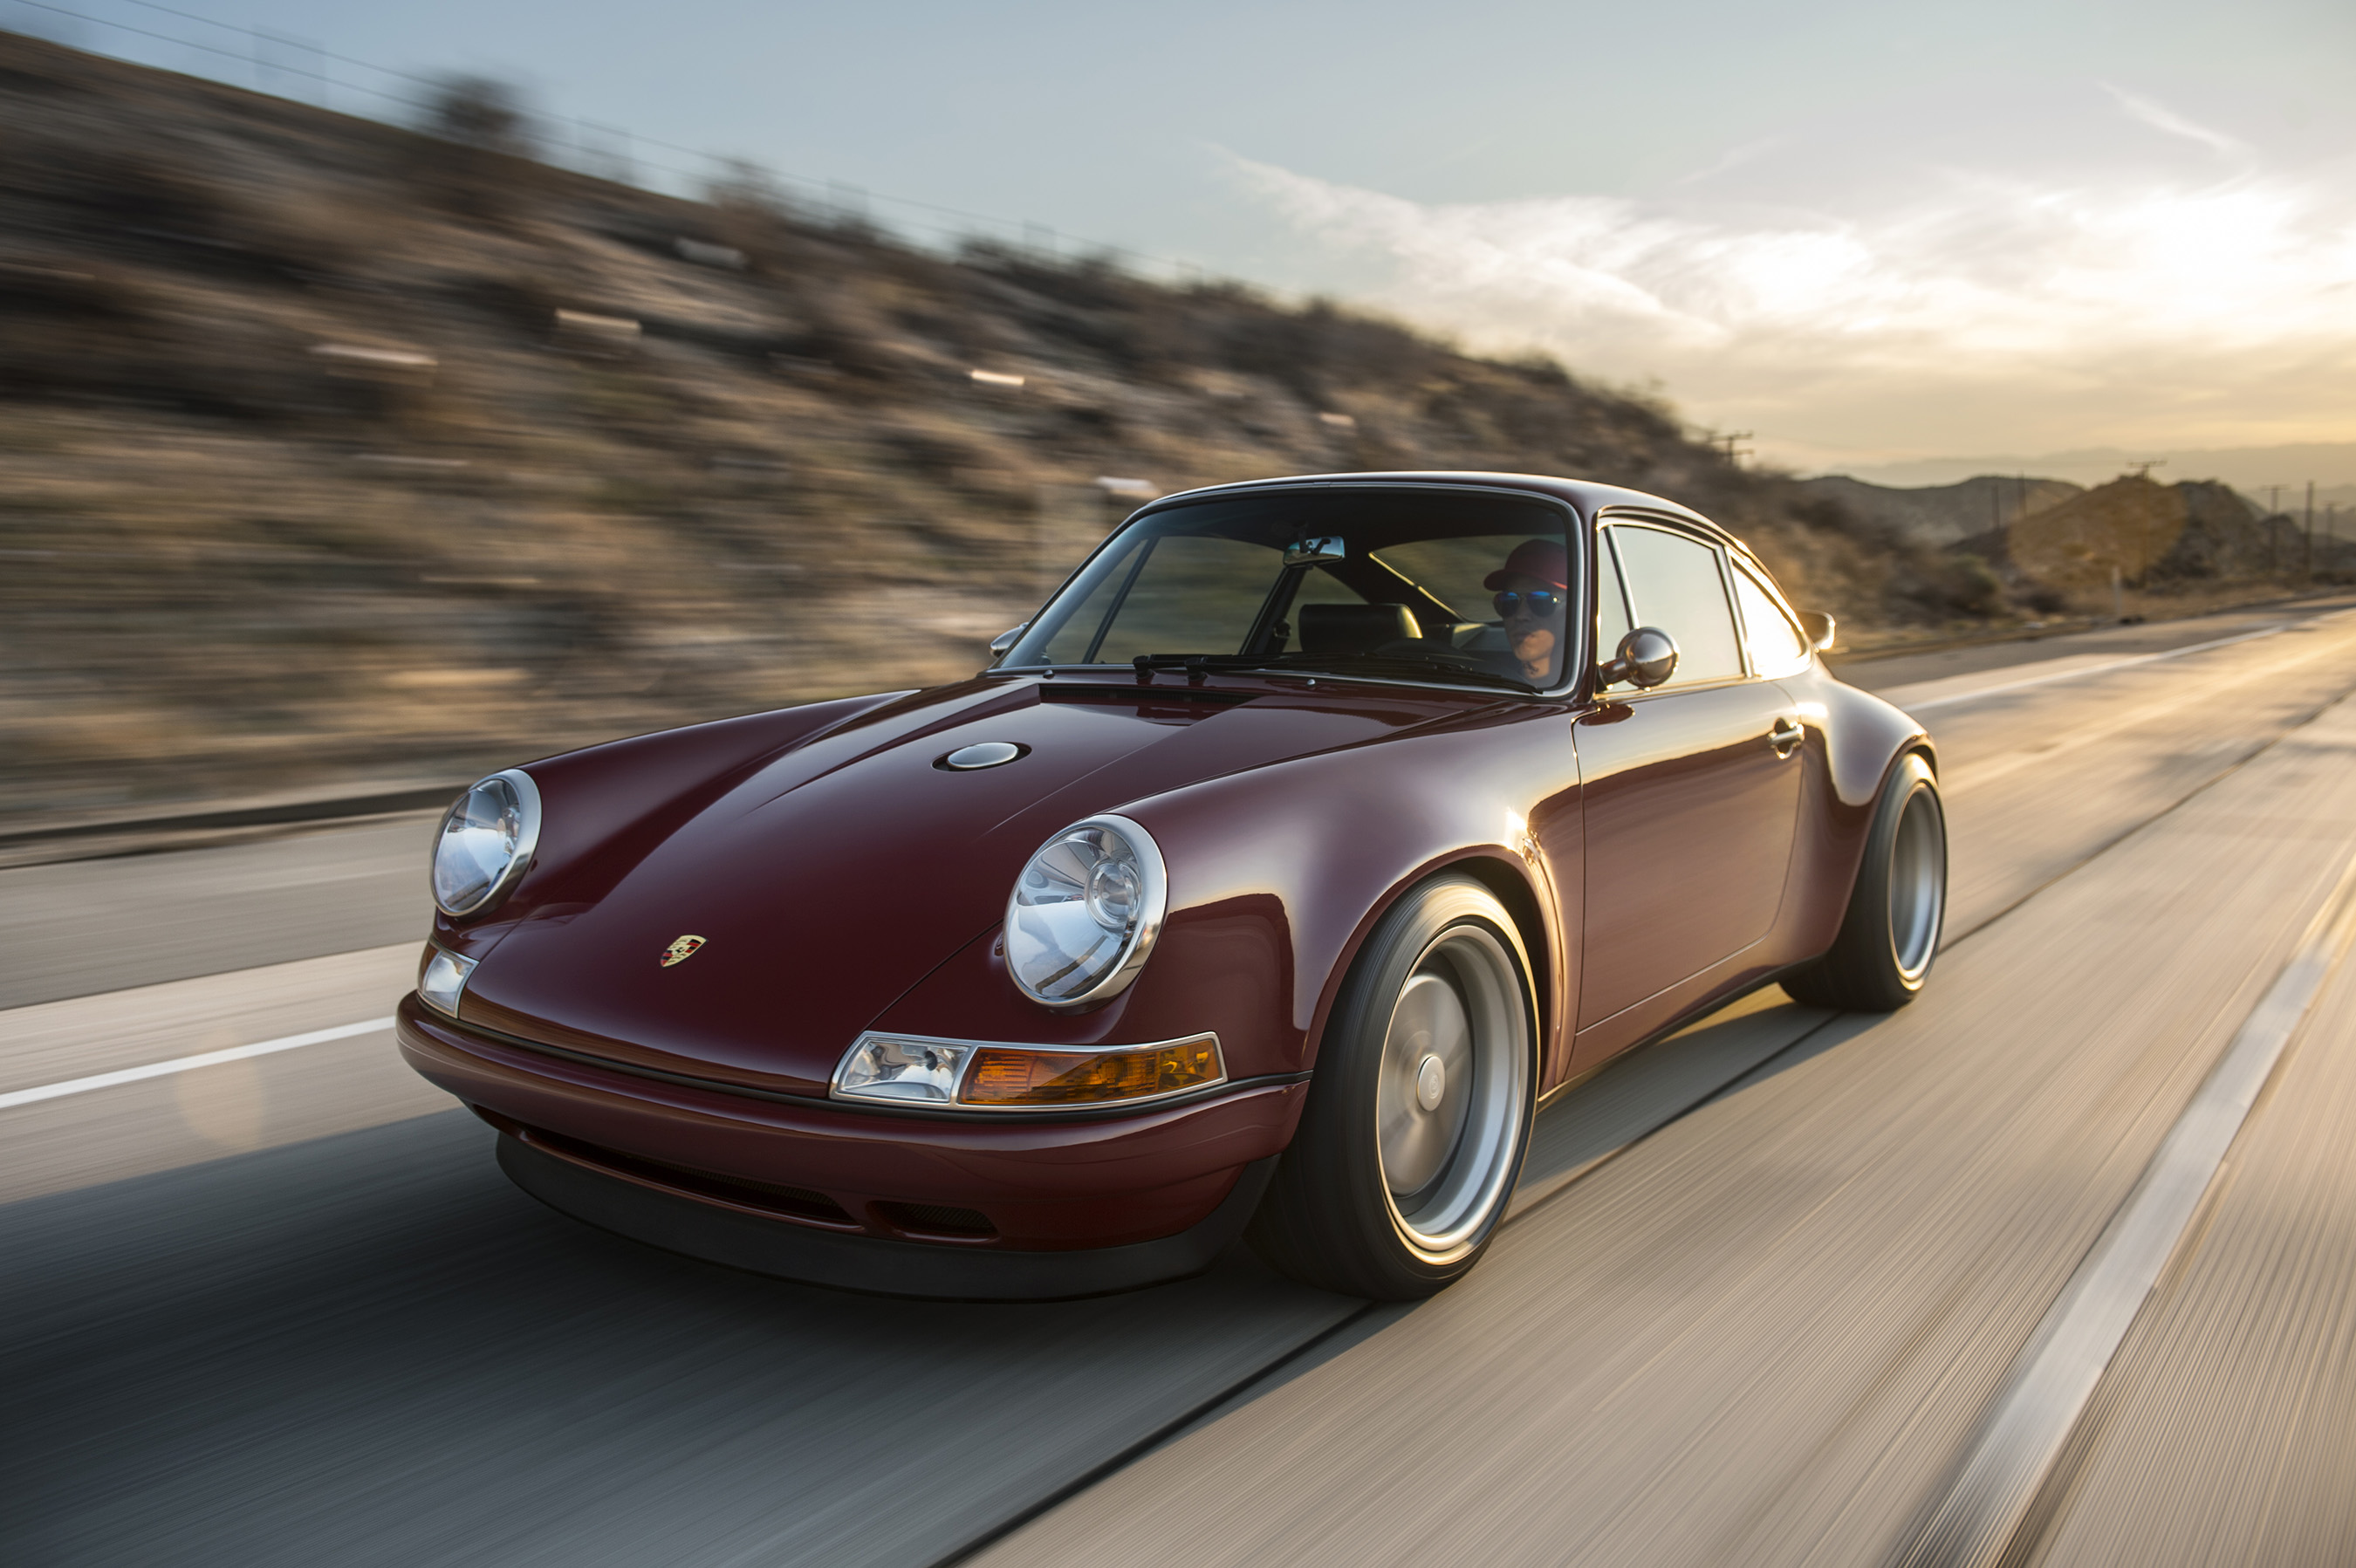 The first Singer restoration to wear a 'clean sides' look, without the customary racing side-stripes, 'North Carolina' is a 1991 Porsche 911 gaining its performance through a 4.0-liter Ed Pink Racing Engine